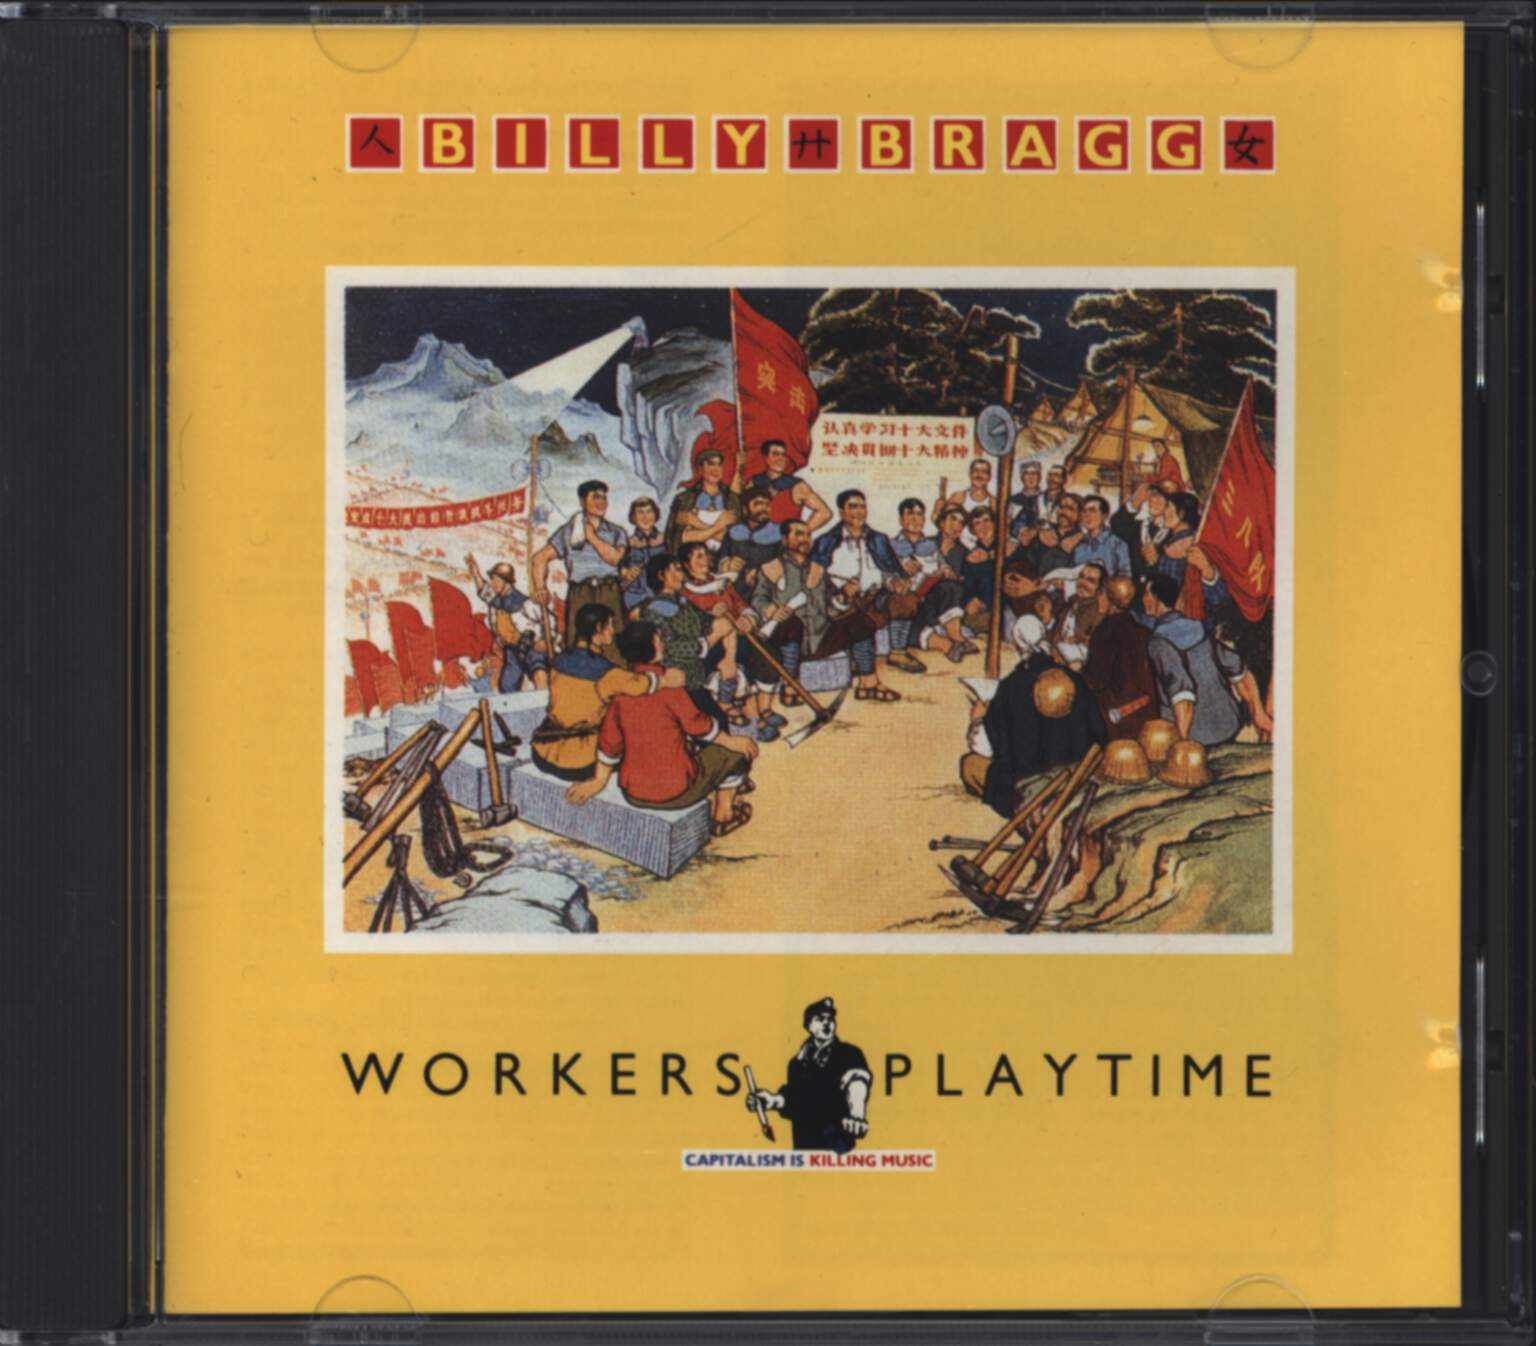 Billy Bragg: Workers Playtime, CD